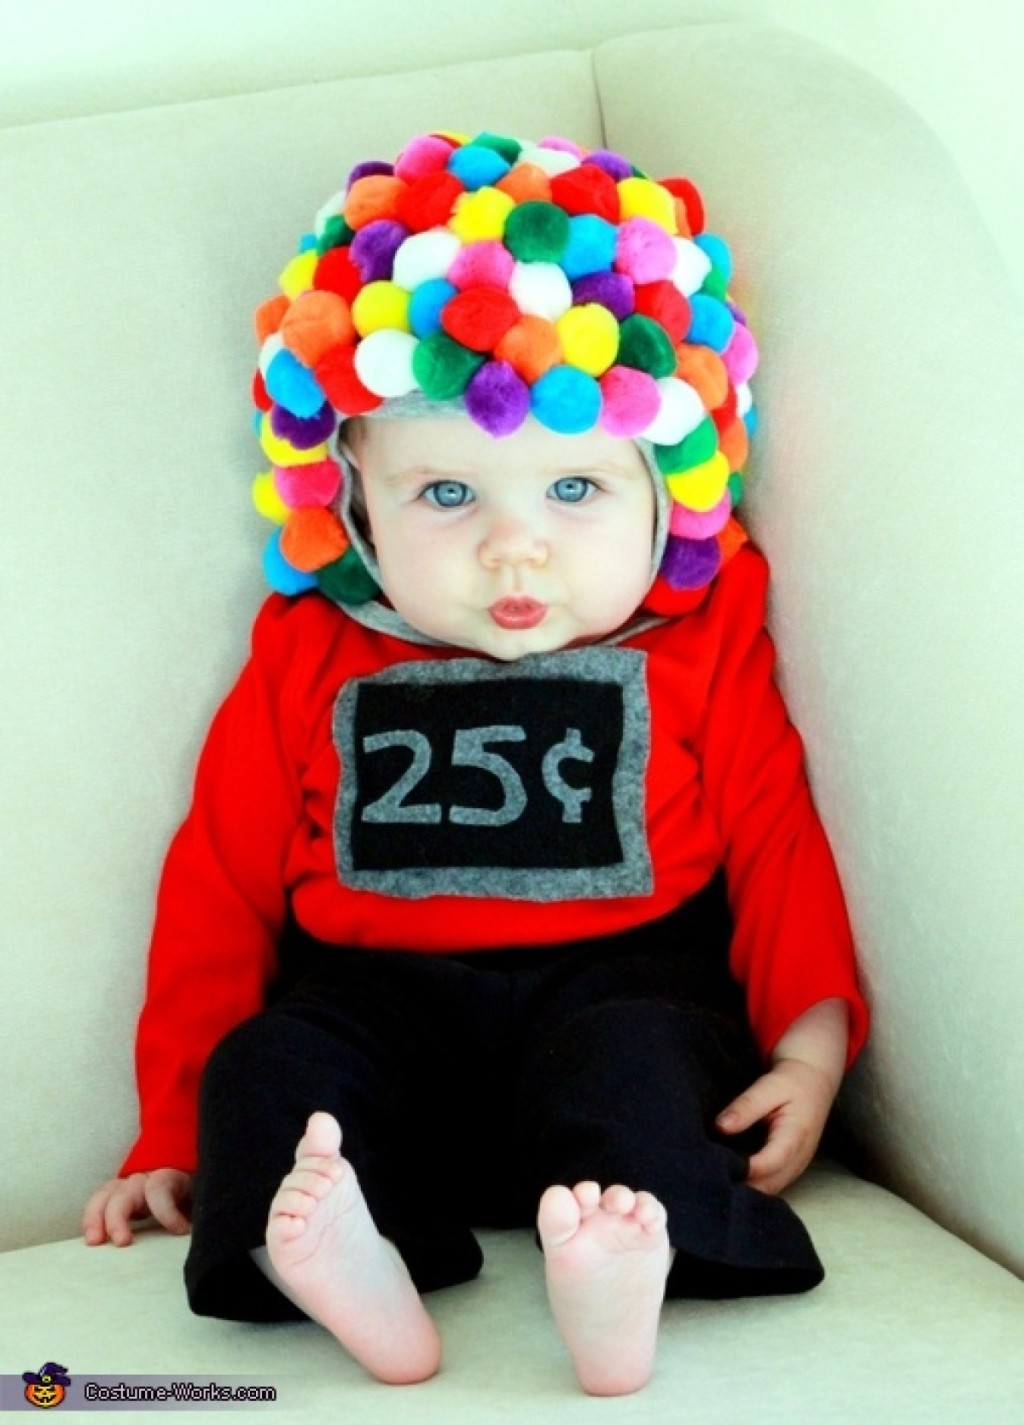 baby wearing 25 cent gumball machine costume